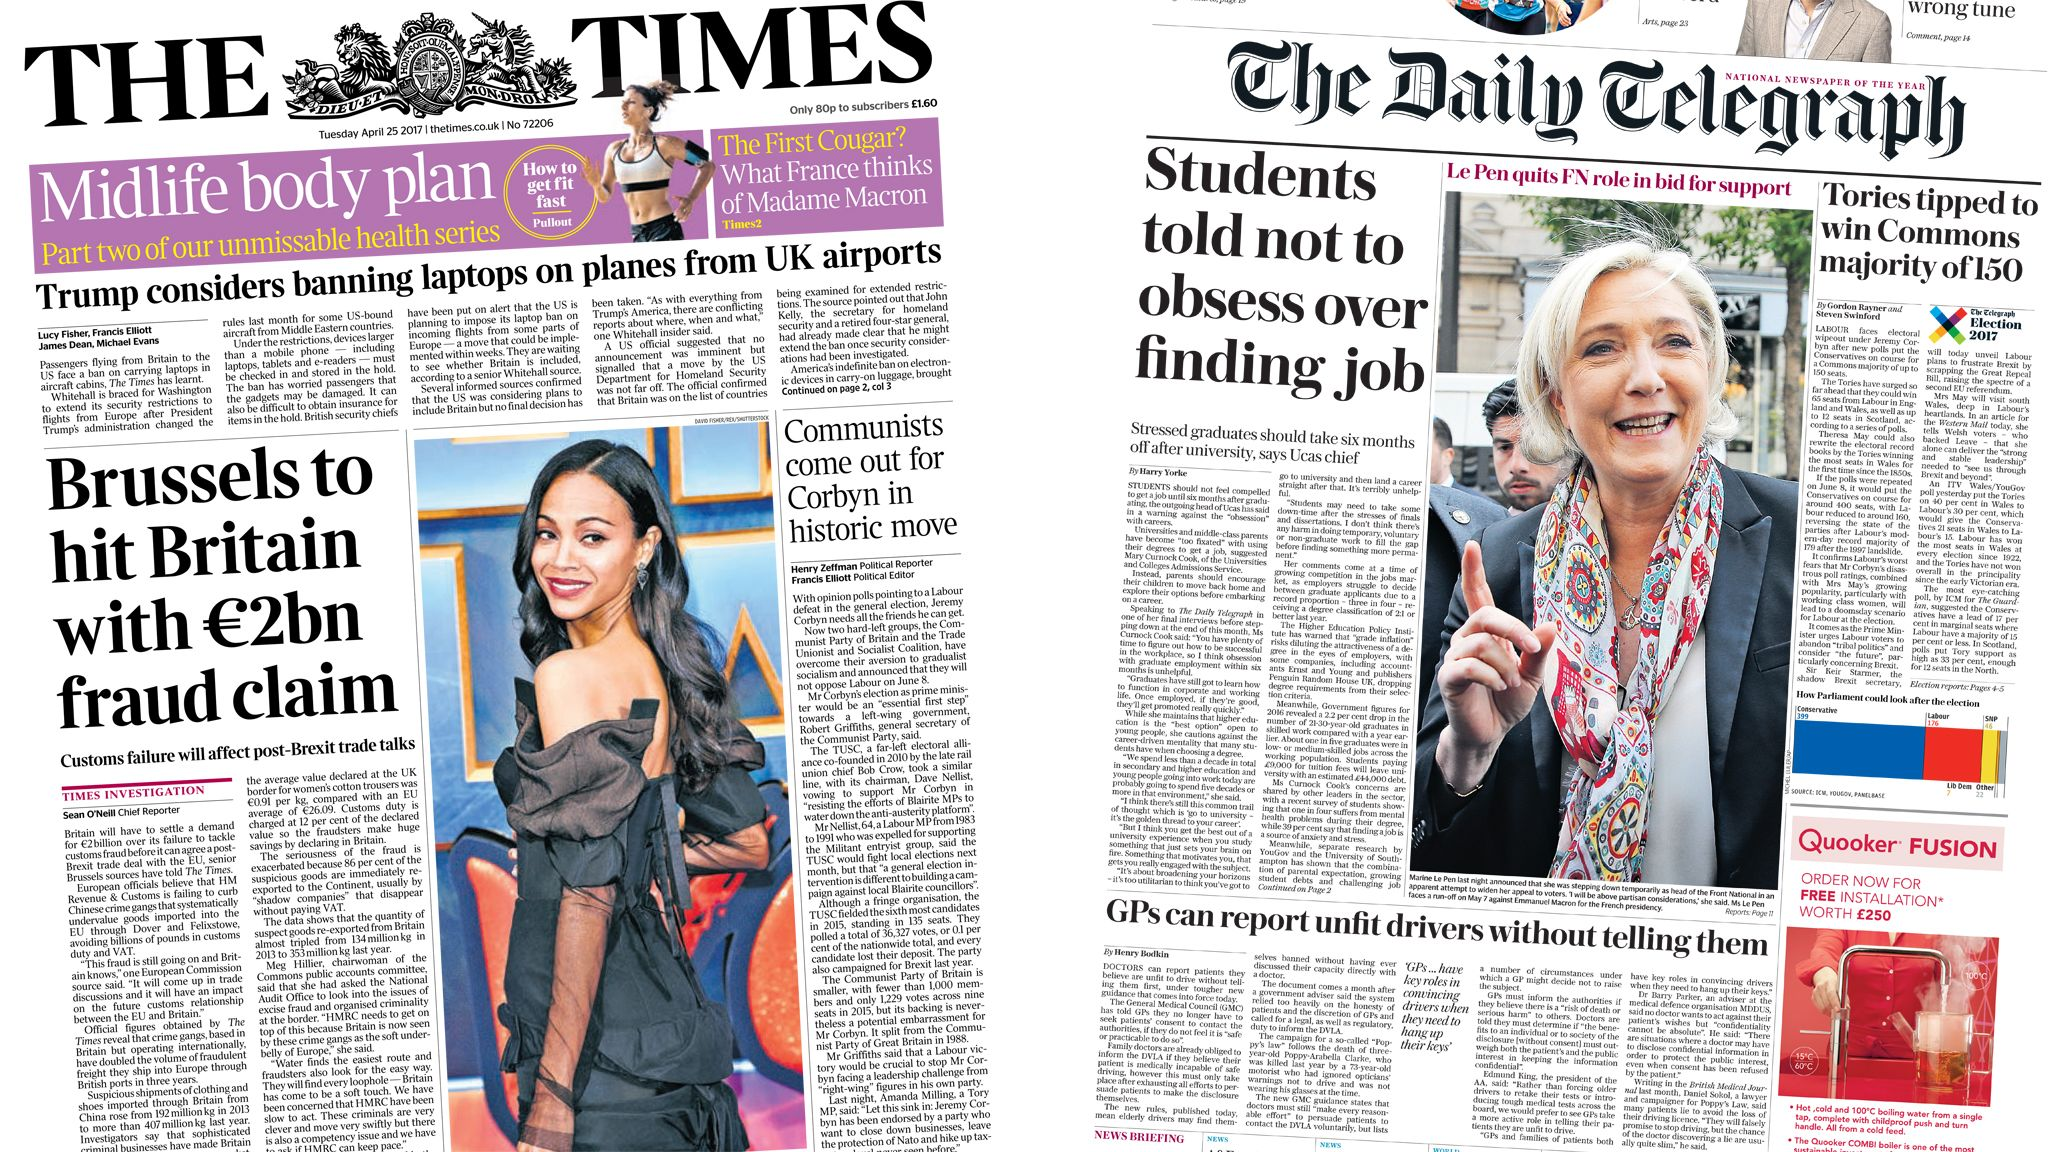 Times and Daily Telegraph front pages for 25/04/17